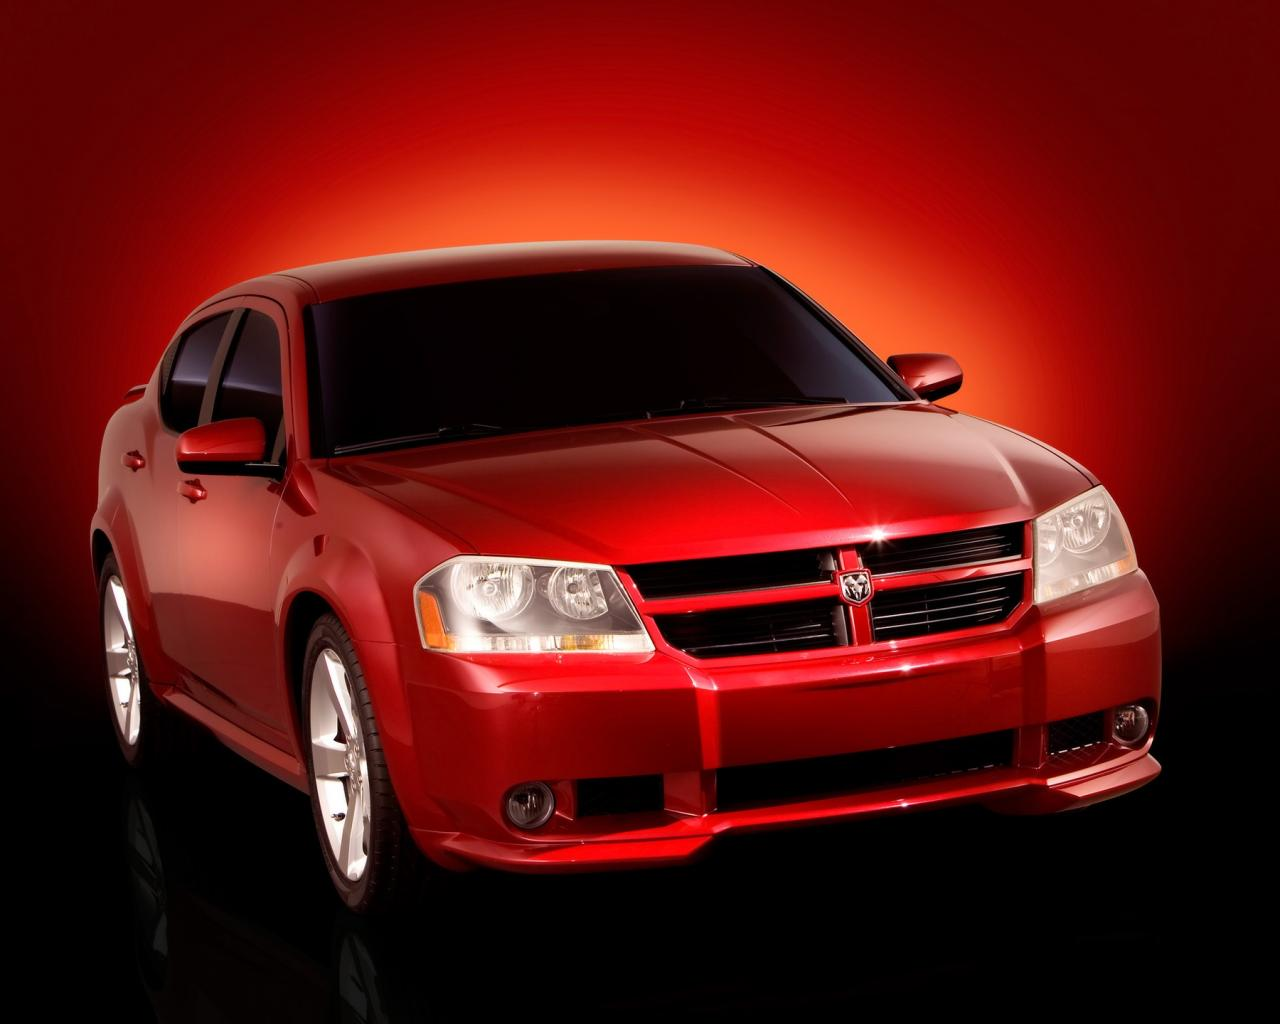 2006 Dodge Avenger Concept Front Angle 1280x1024